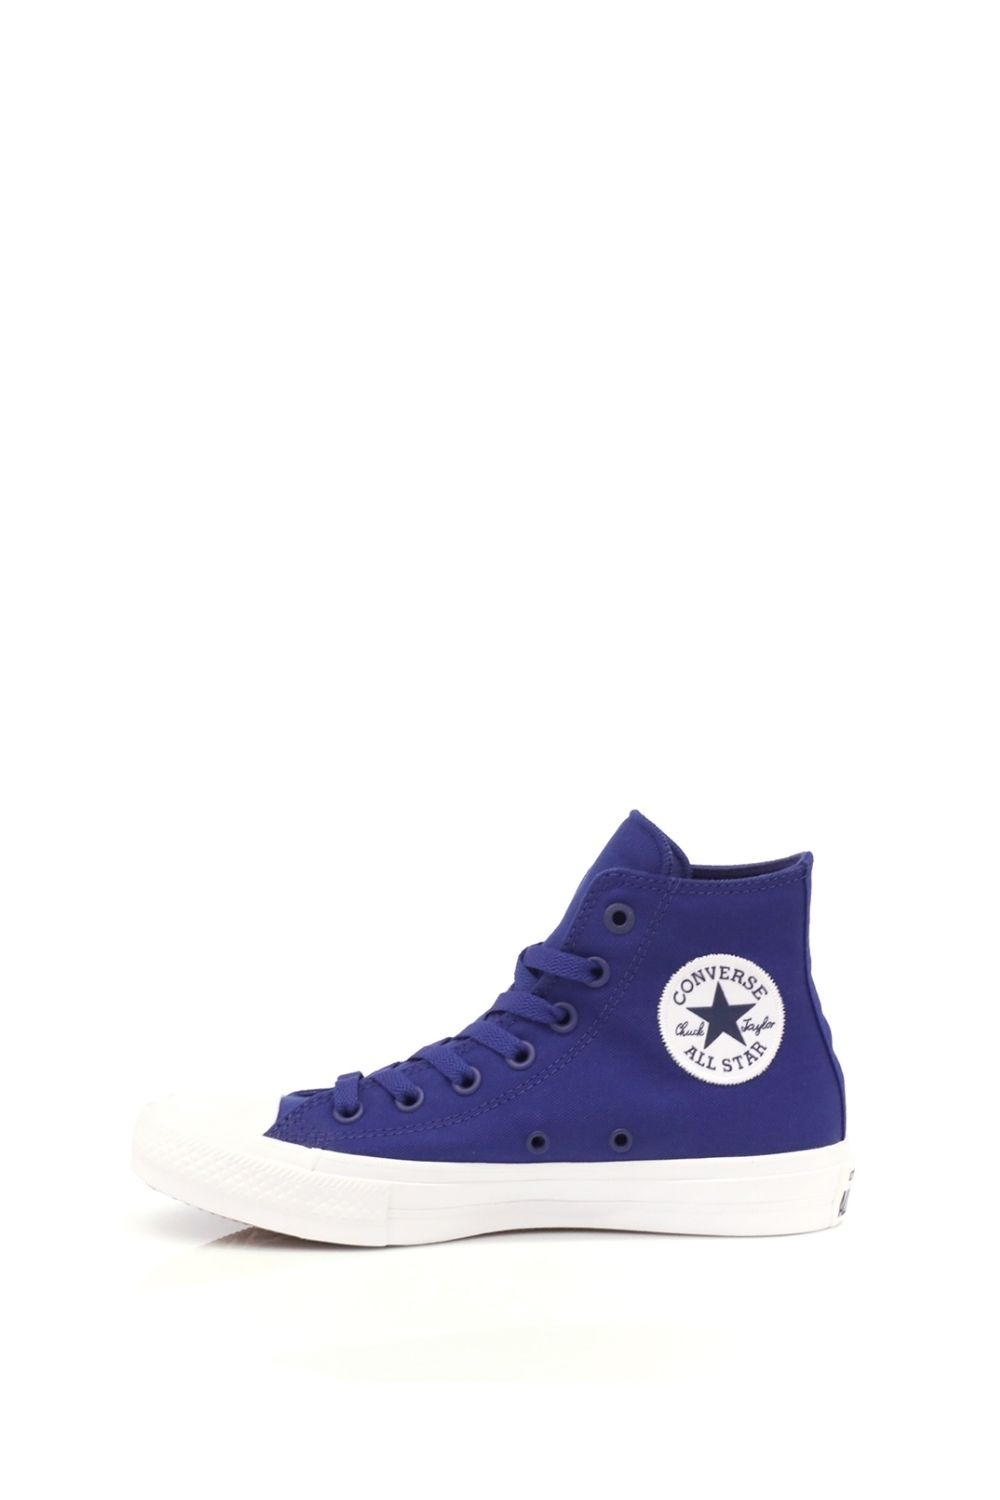 save off 05cae e16ff -20% Collective Online CONVERSE – Unisex παπούτσια Chuck Taylor All Star II  Hi μπλε